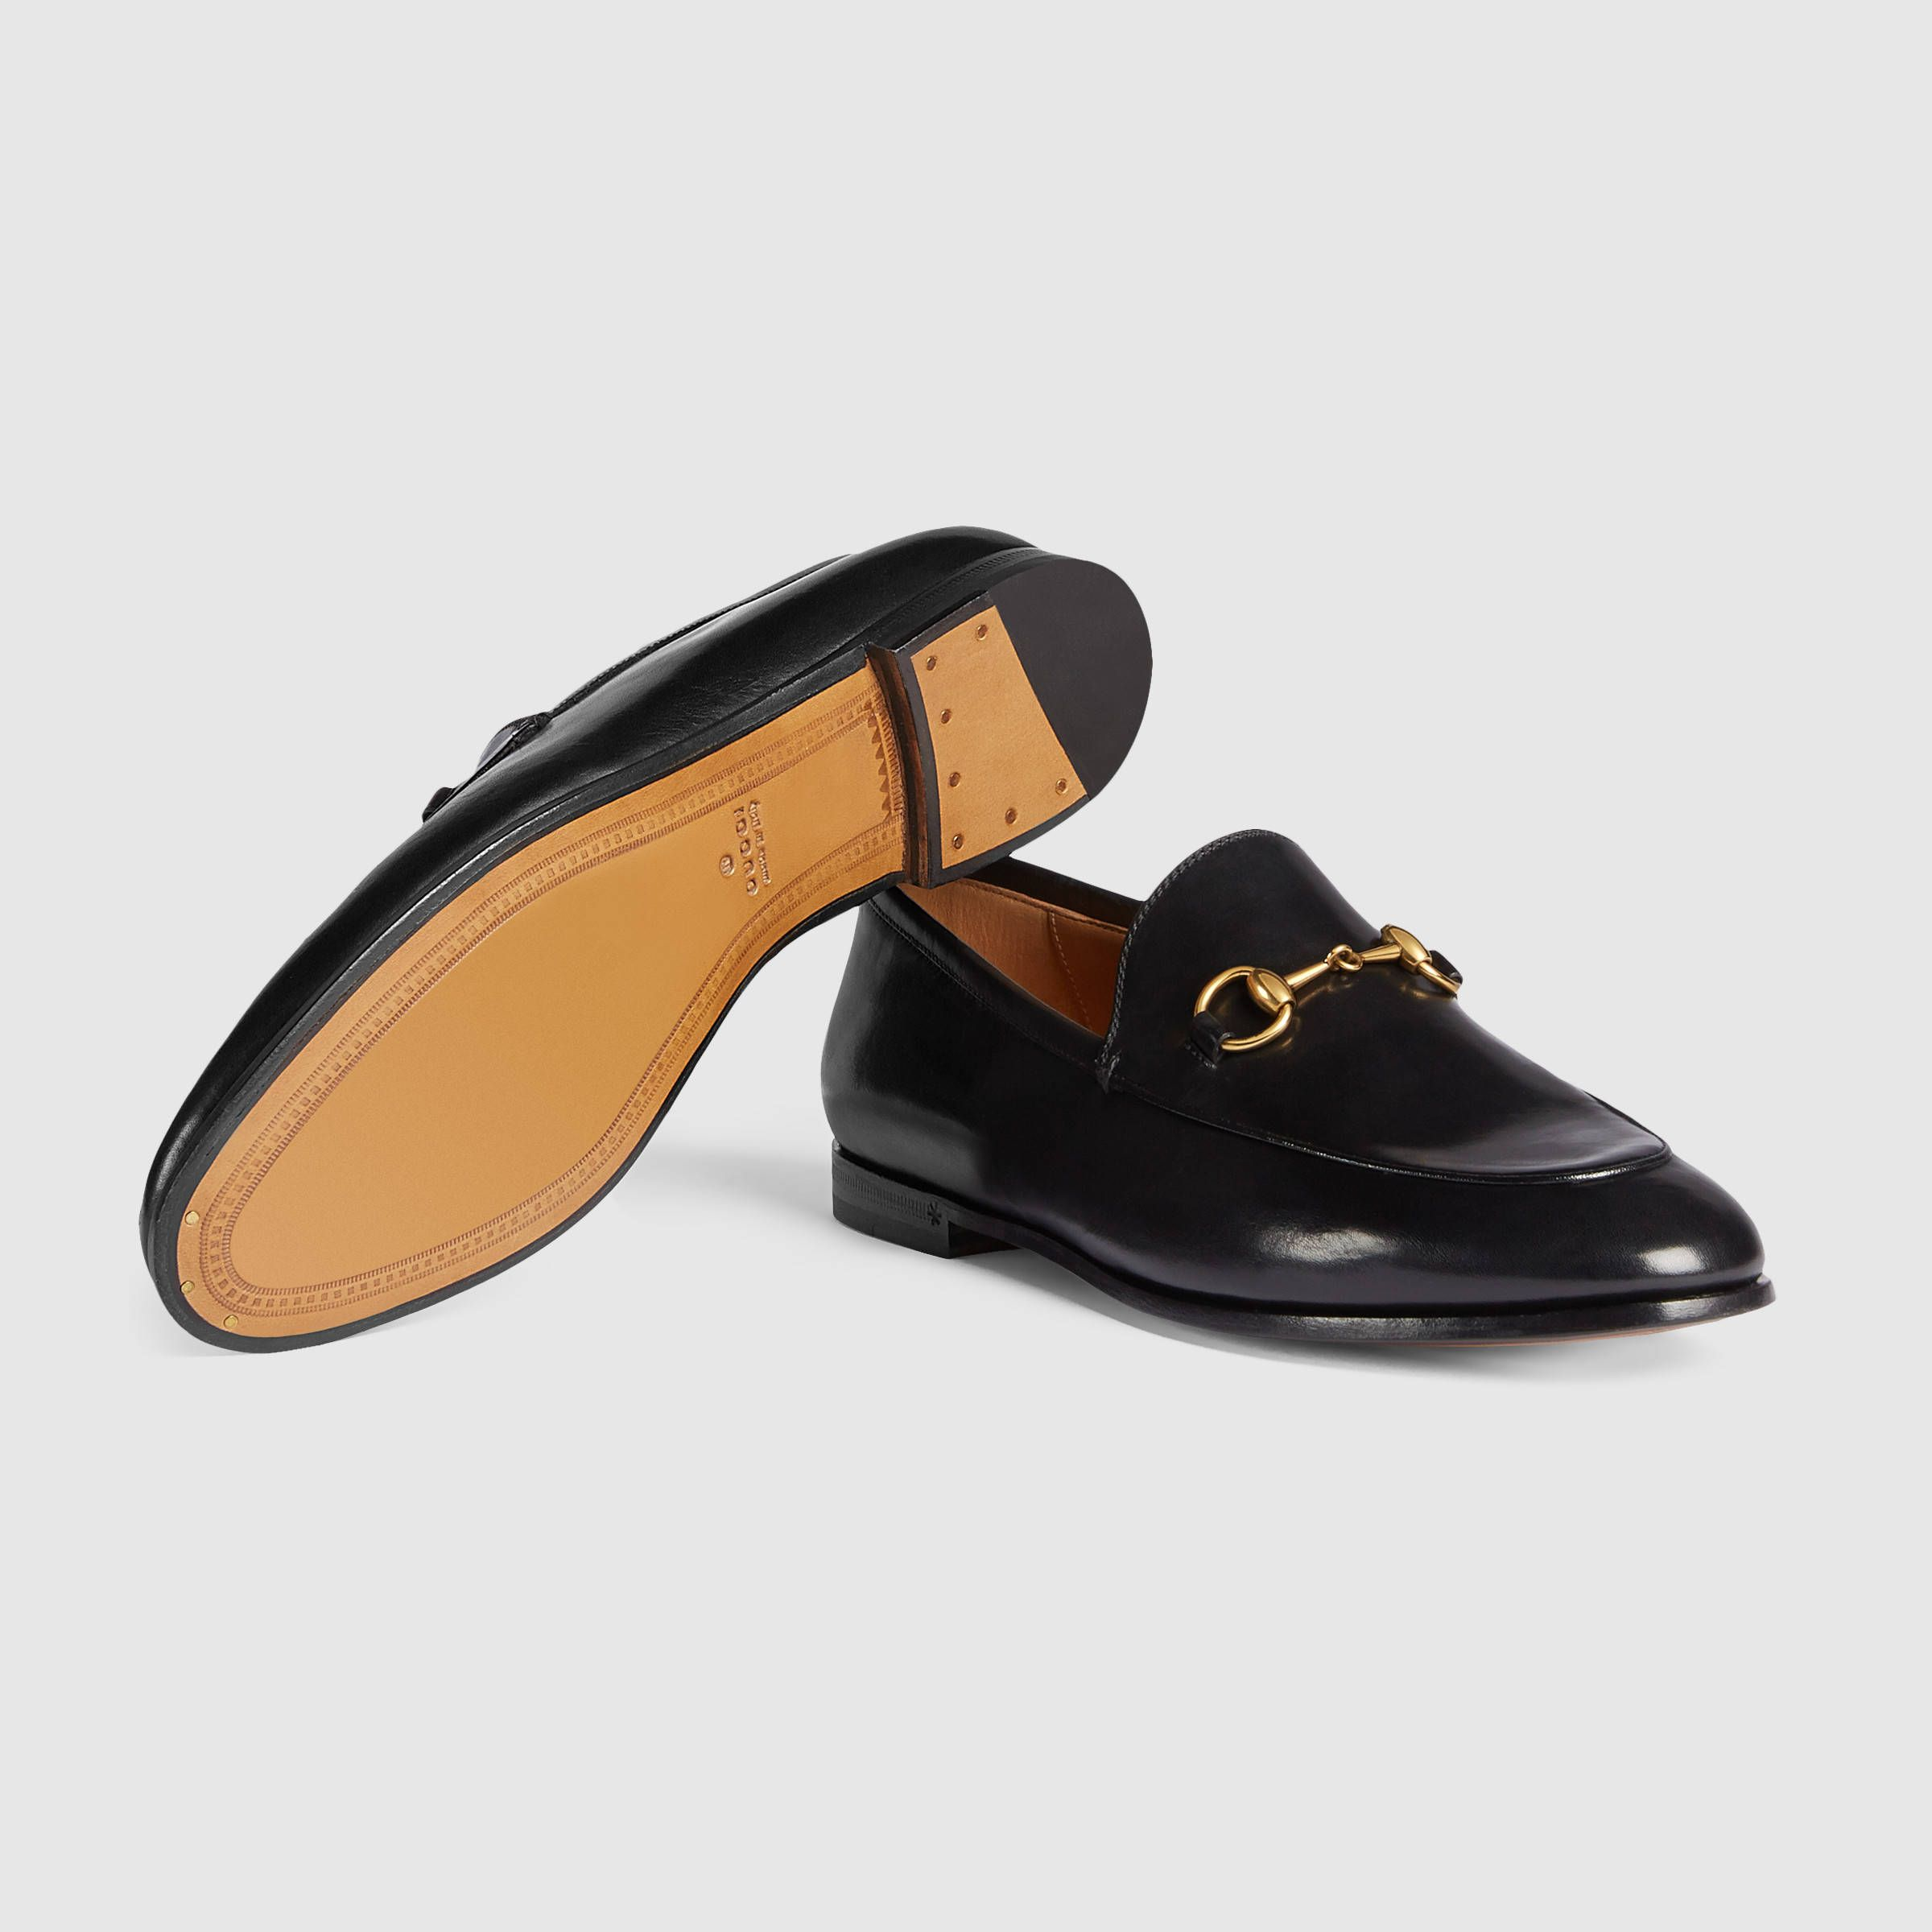 mocassins mors gucci jordaan en cuir chaussure les chaussures et chaussures t. Black Bedroom Furniture Sets. Home Design Ideas